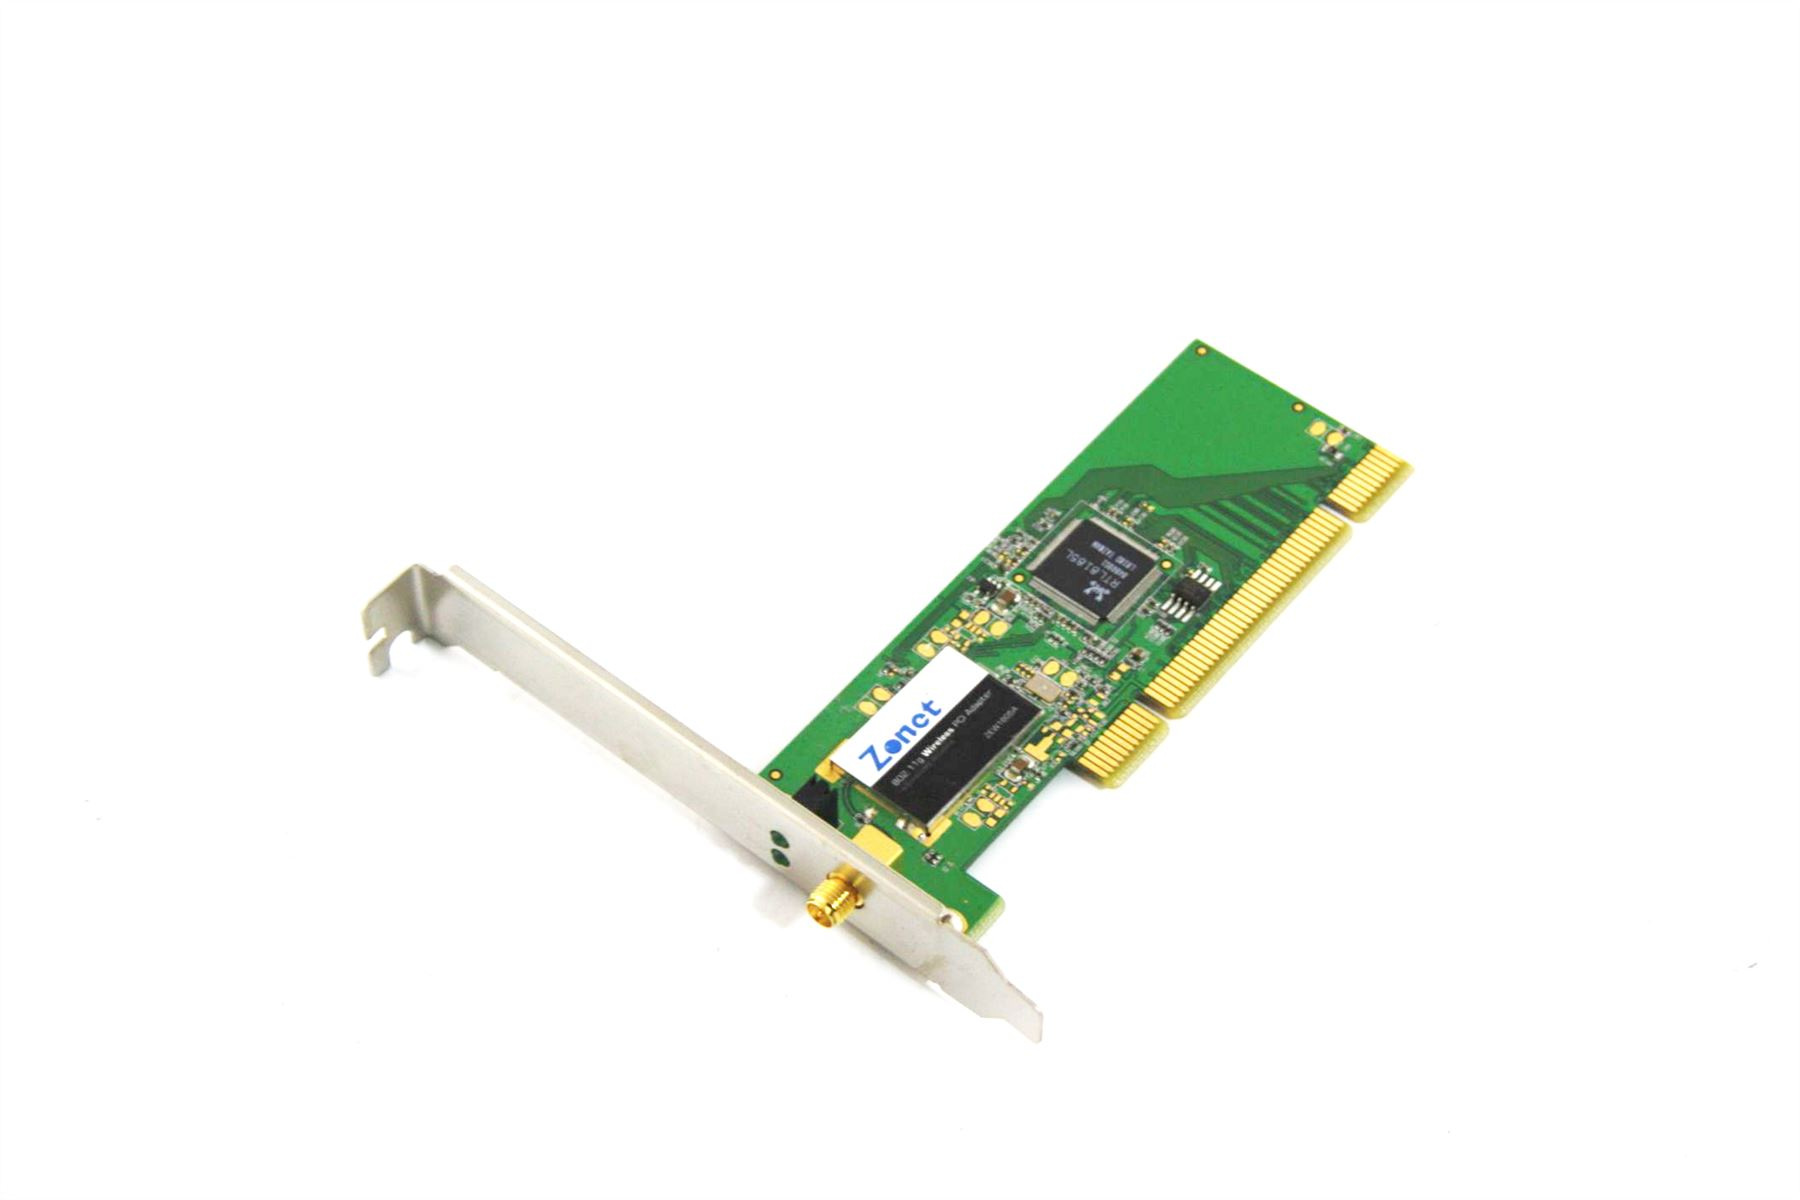 ZONET 802.11 G WIRELESS PCI ADAPTER DRIVERS WINDOWS XP